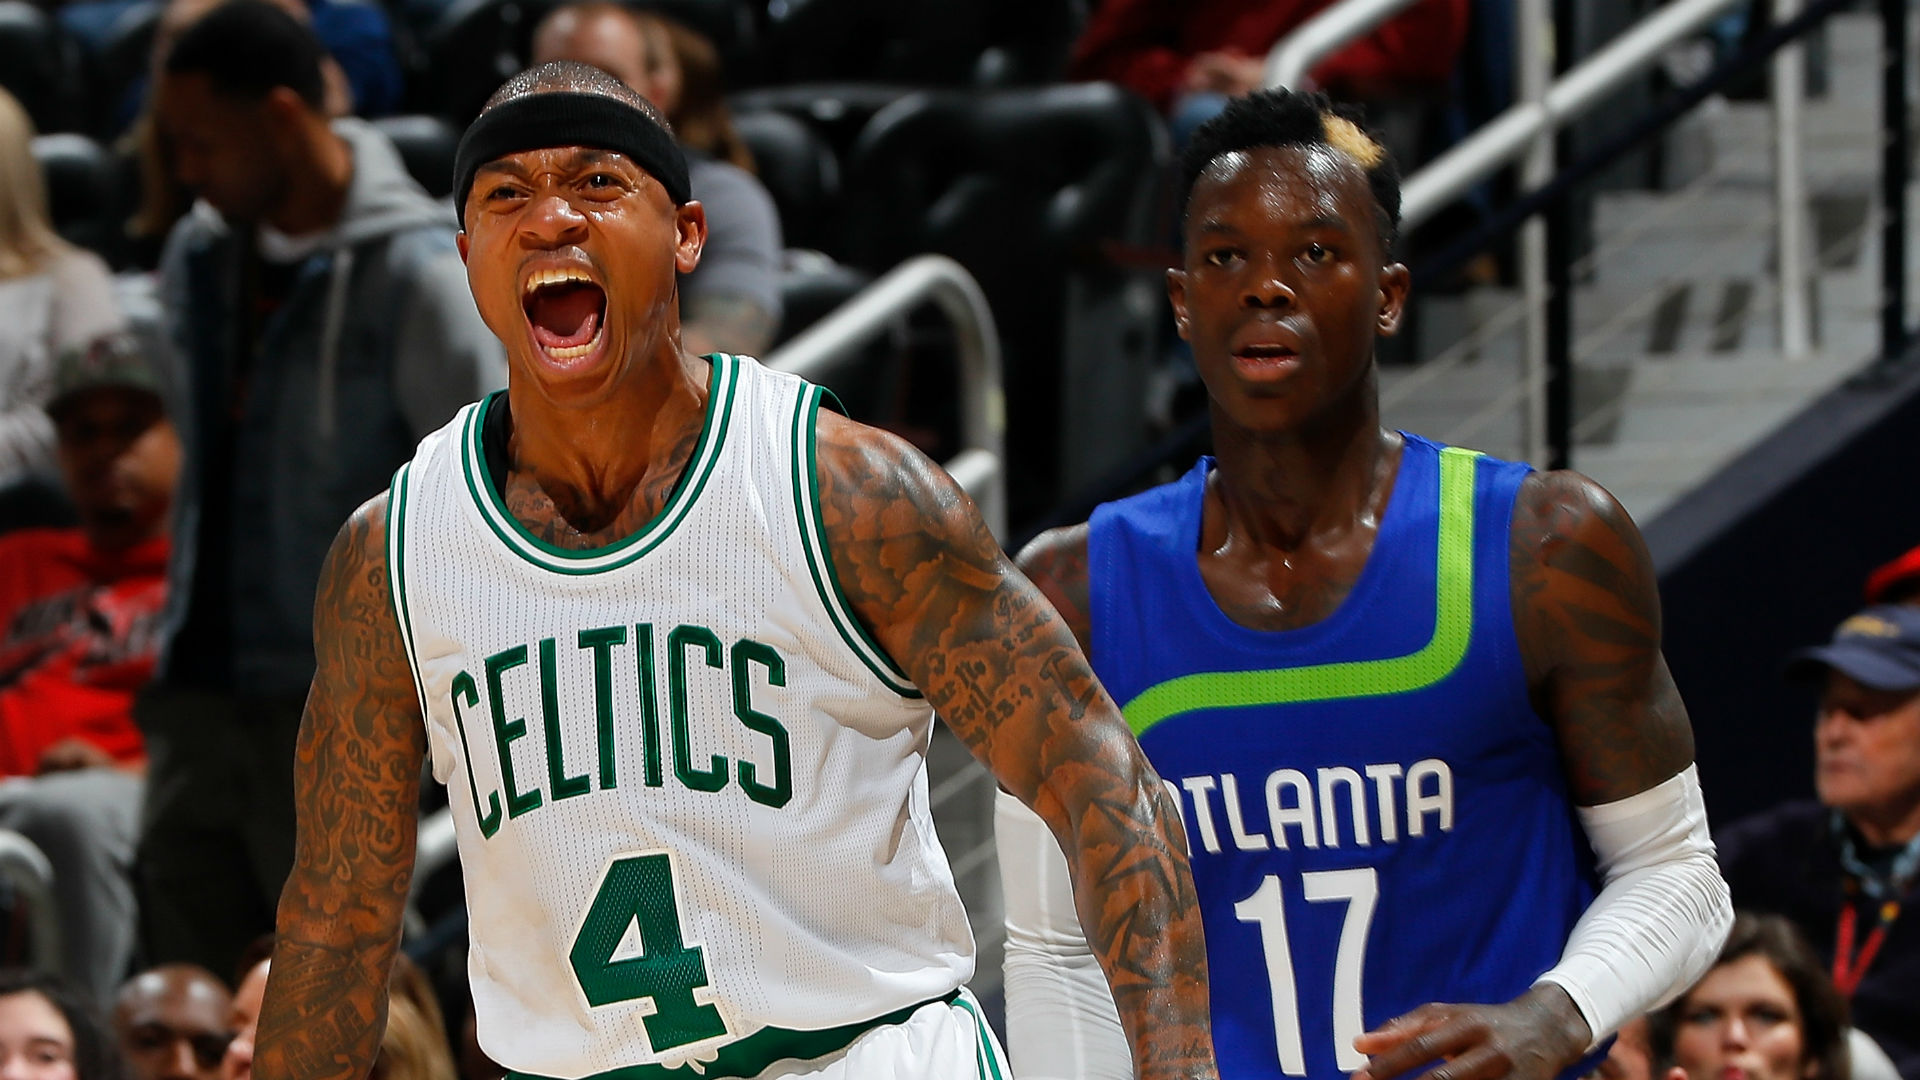 Isaiah Thomas to play Game 2, then fly to sister's funeral